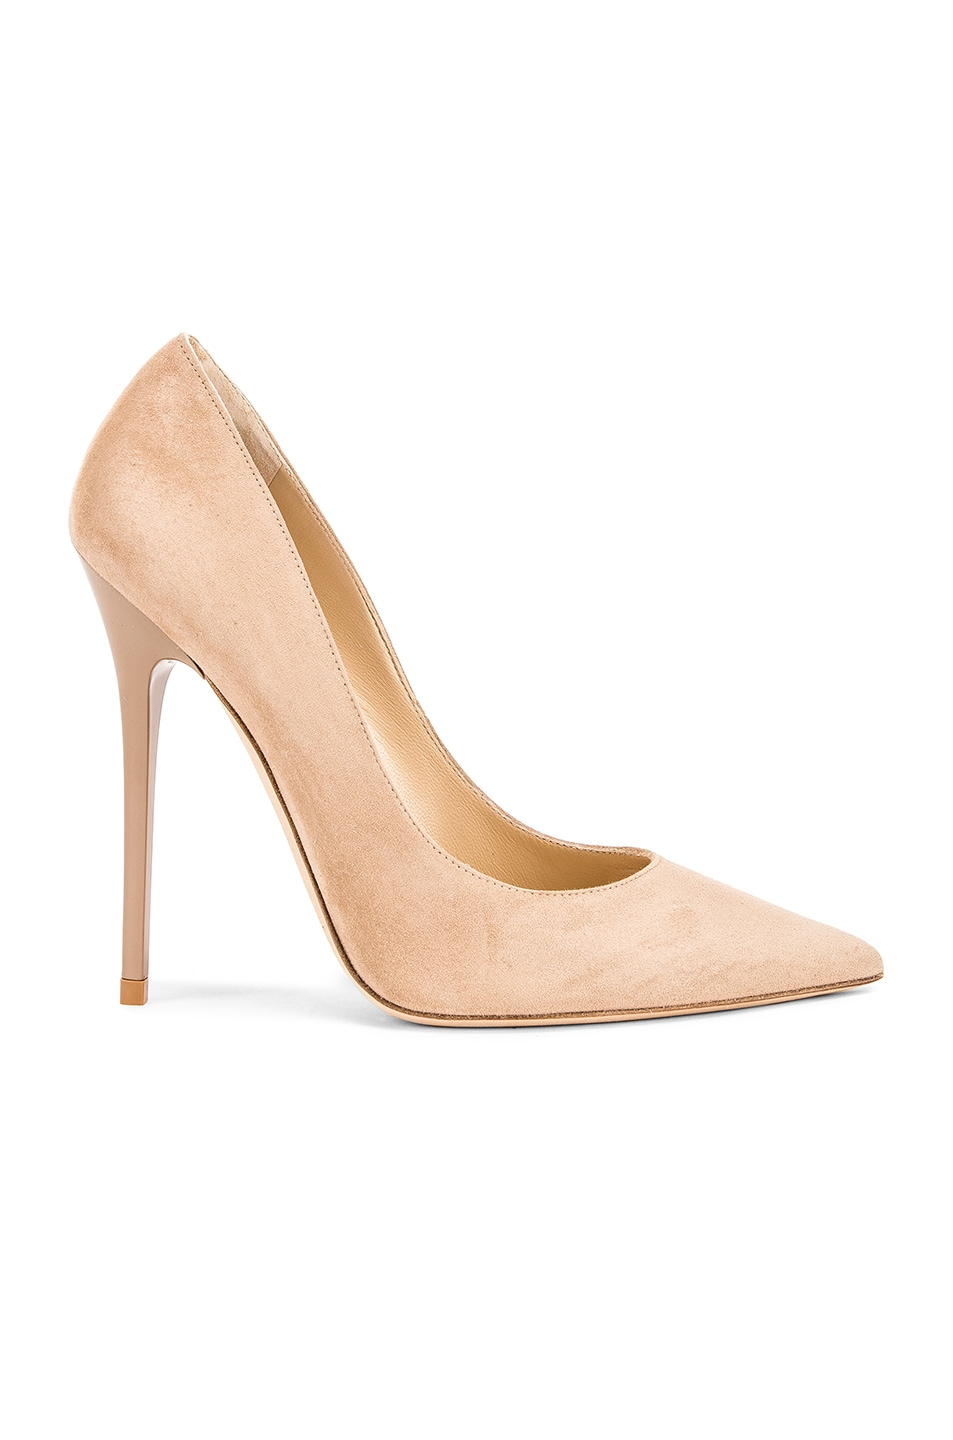 Image 1 of Jimmy Choo Anouk Suede Pumps in Nude